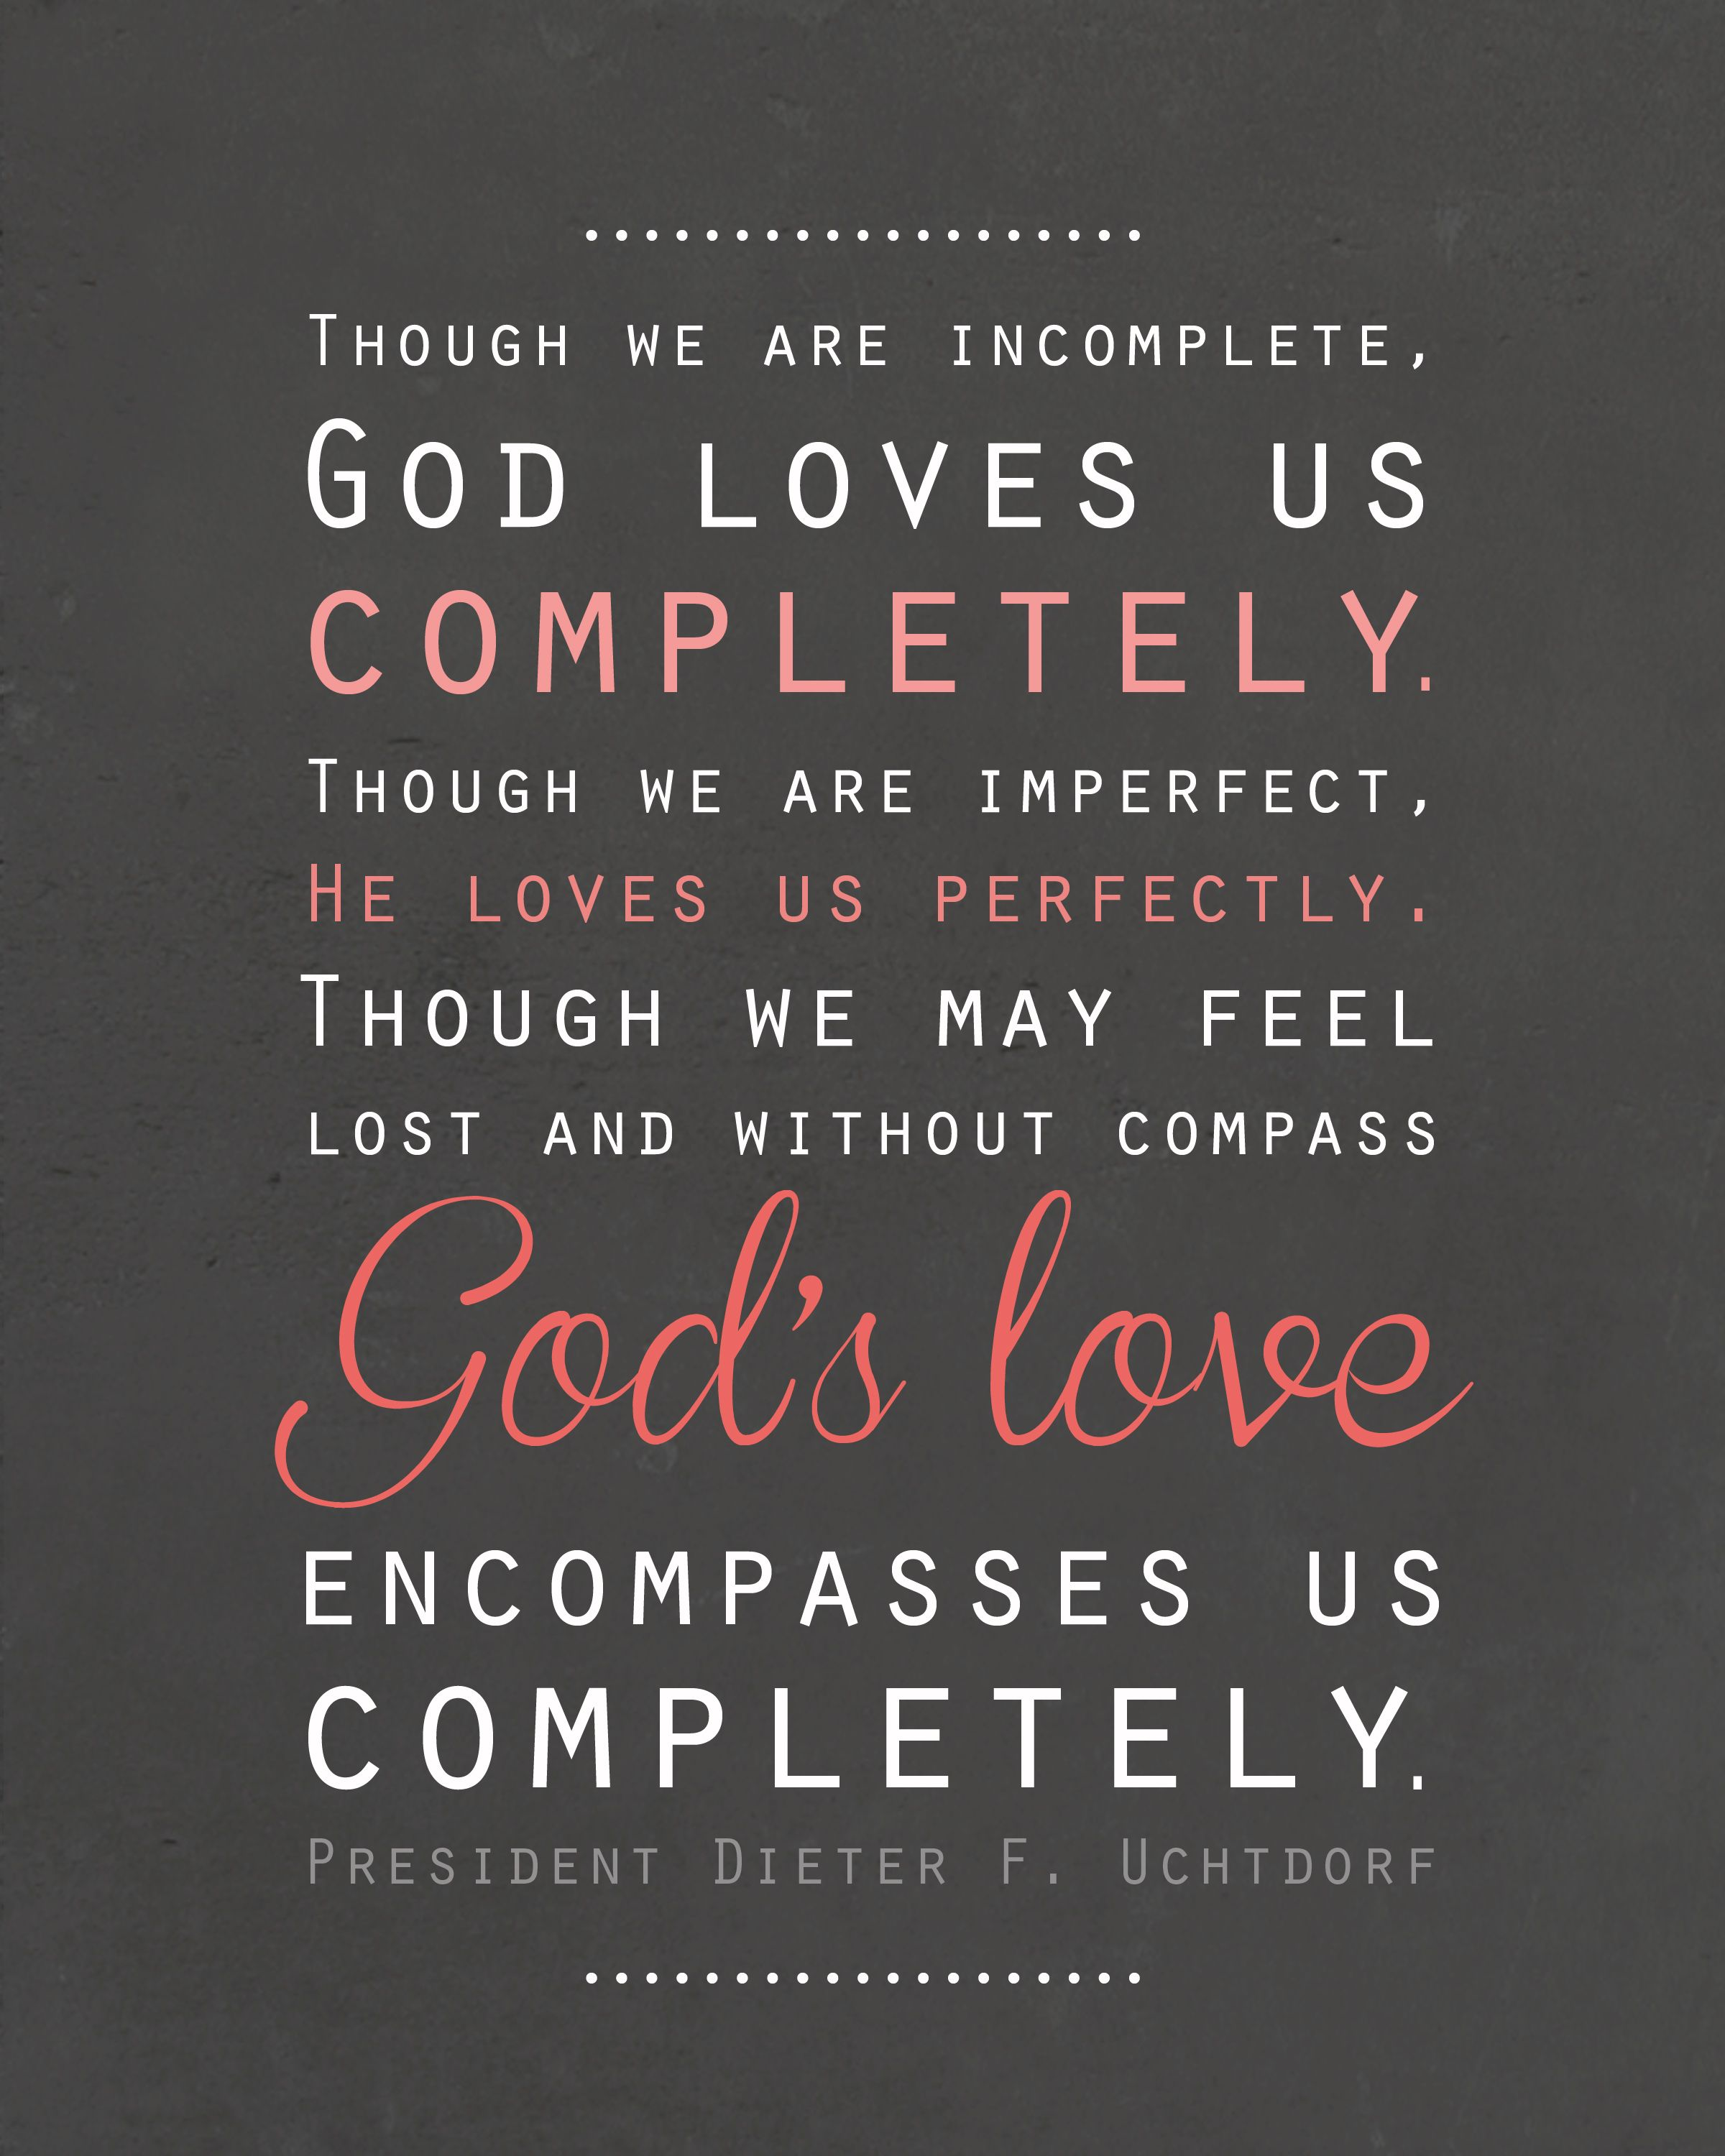 God's Love Quotes Stunning Free Lds Printable Artwork  Pinterest  Free Churches And